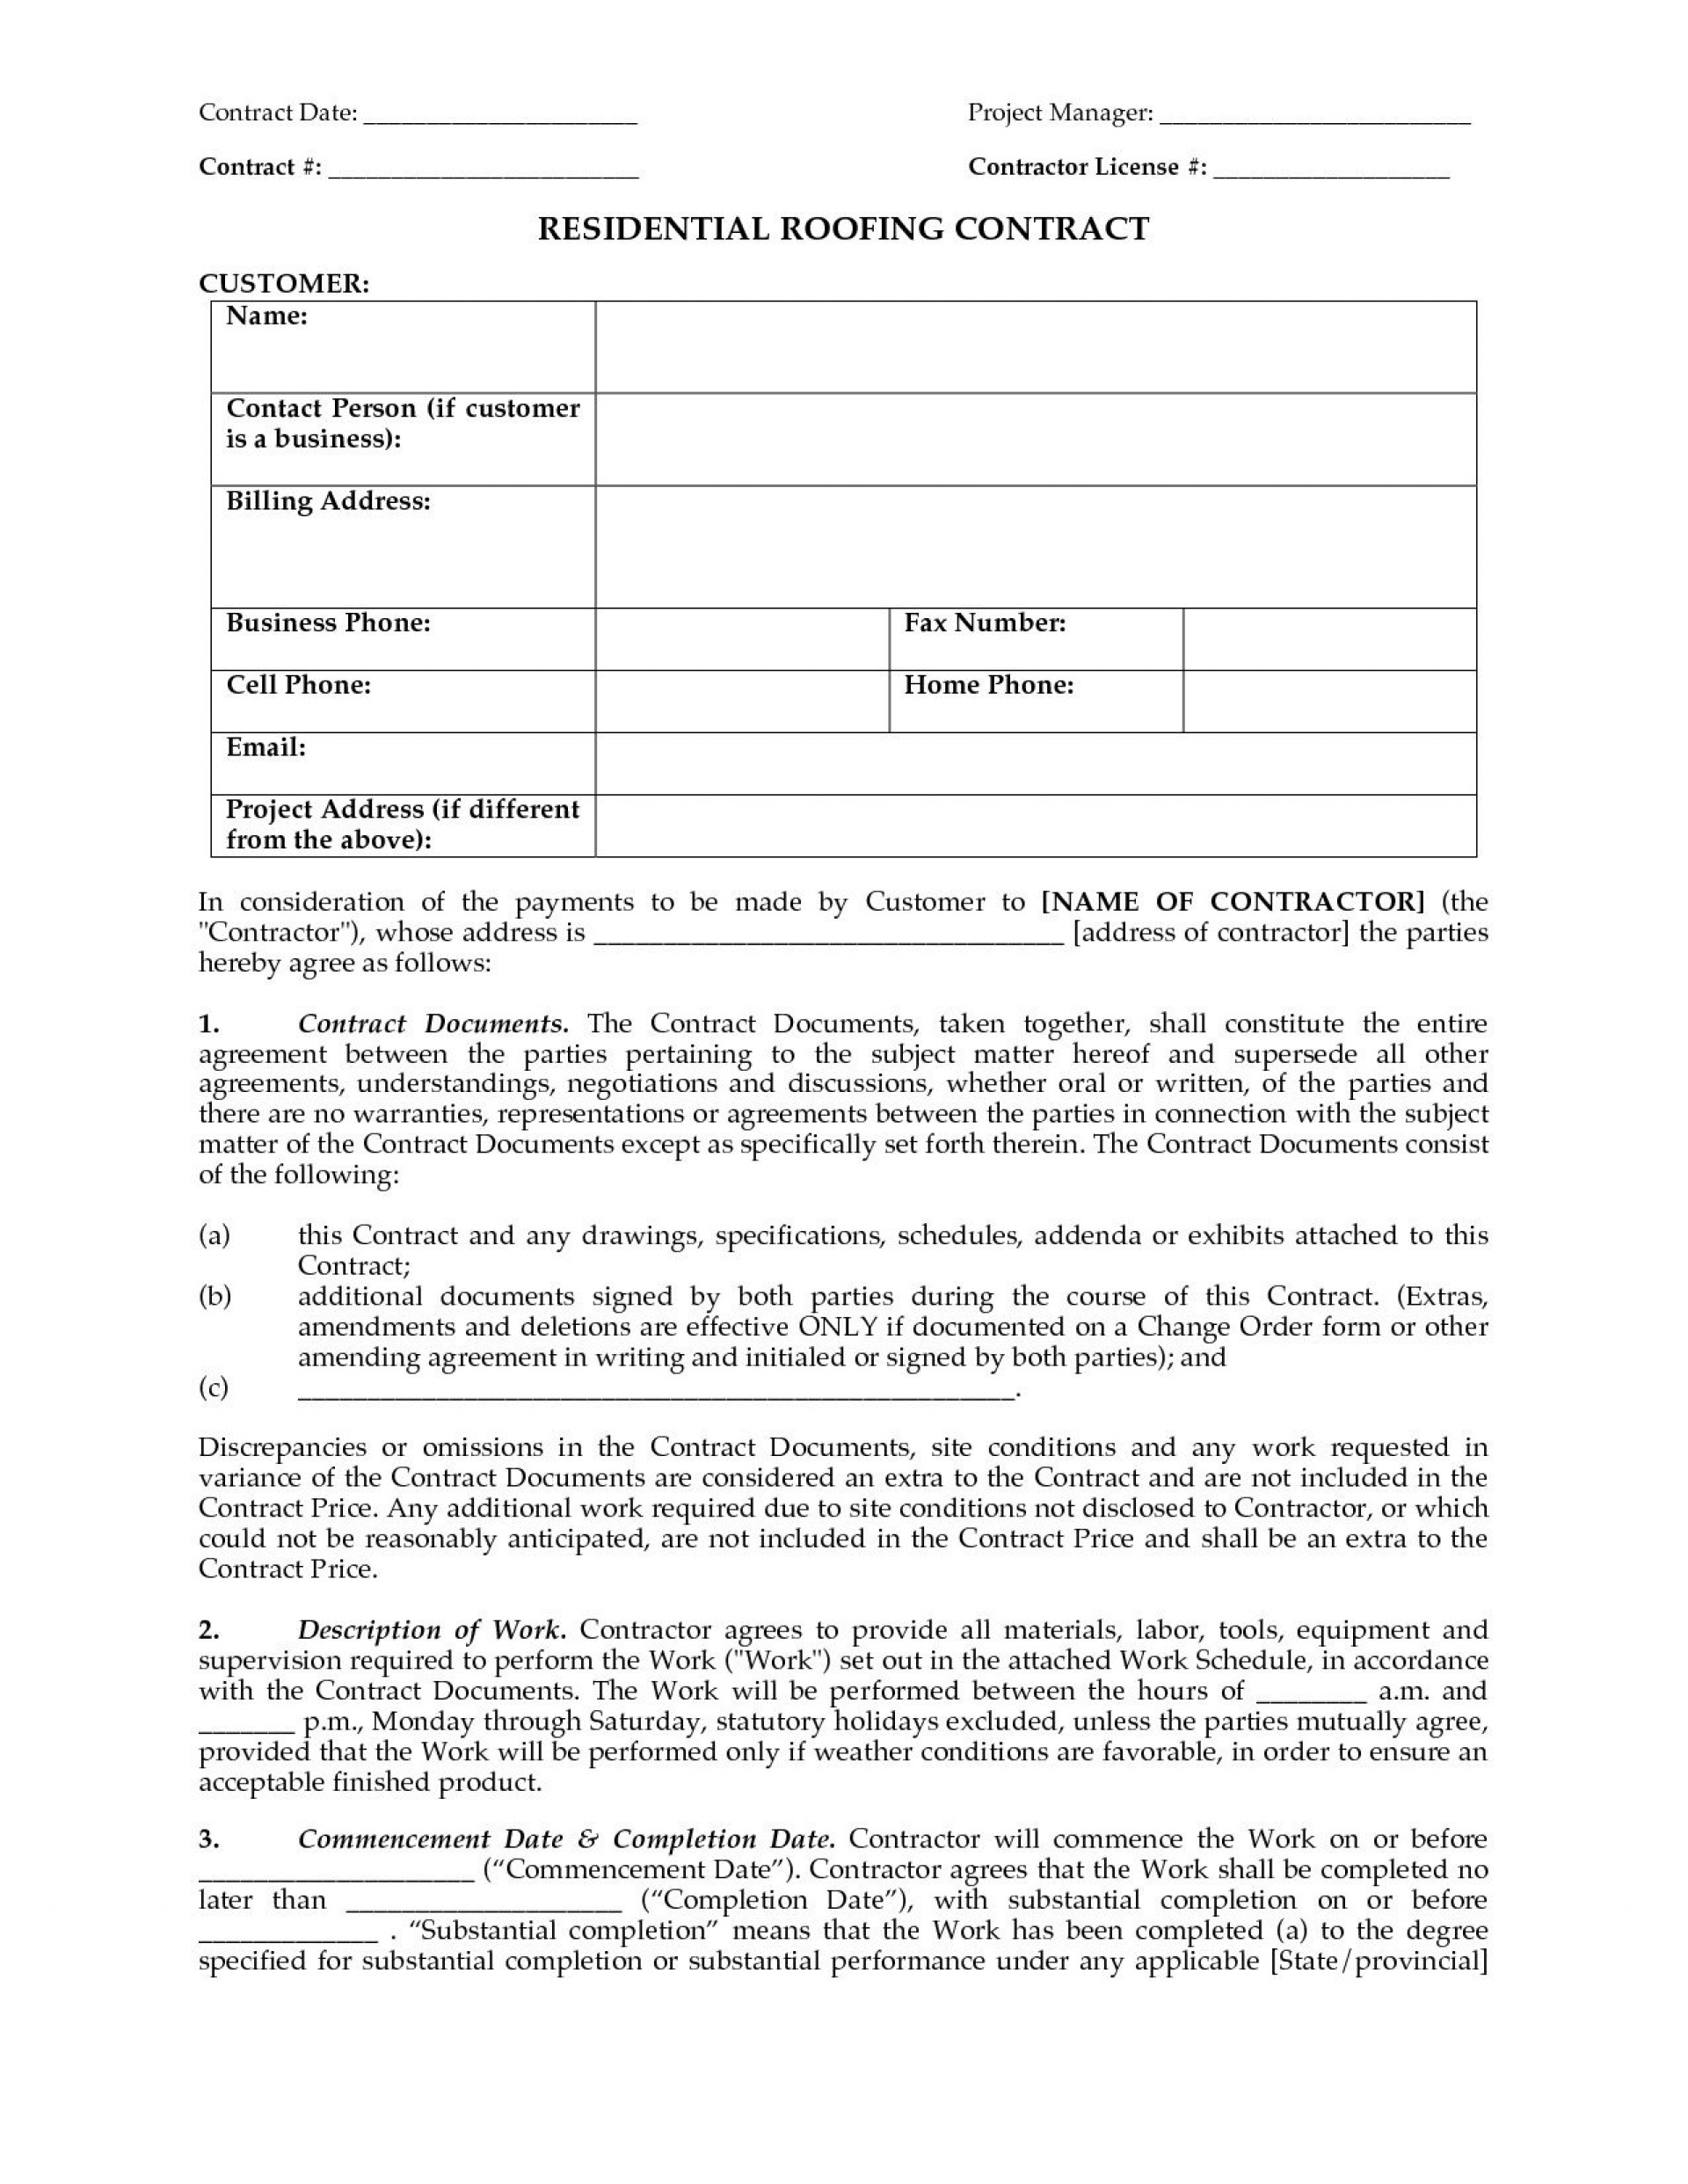 000 Rare Free Residential Roofing Contract Template Idea 1920